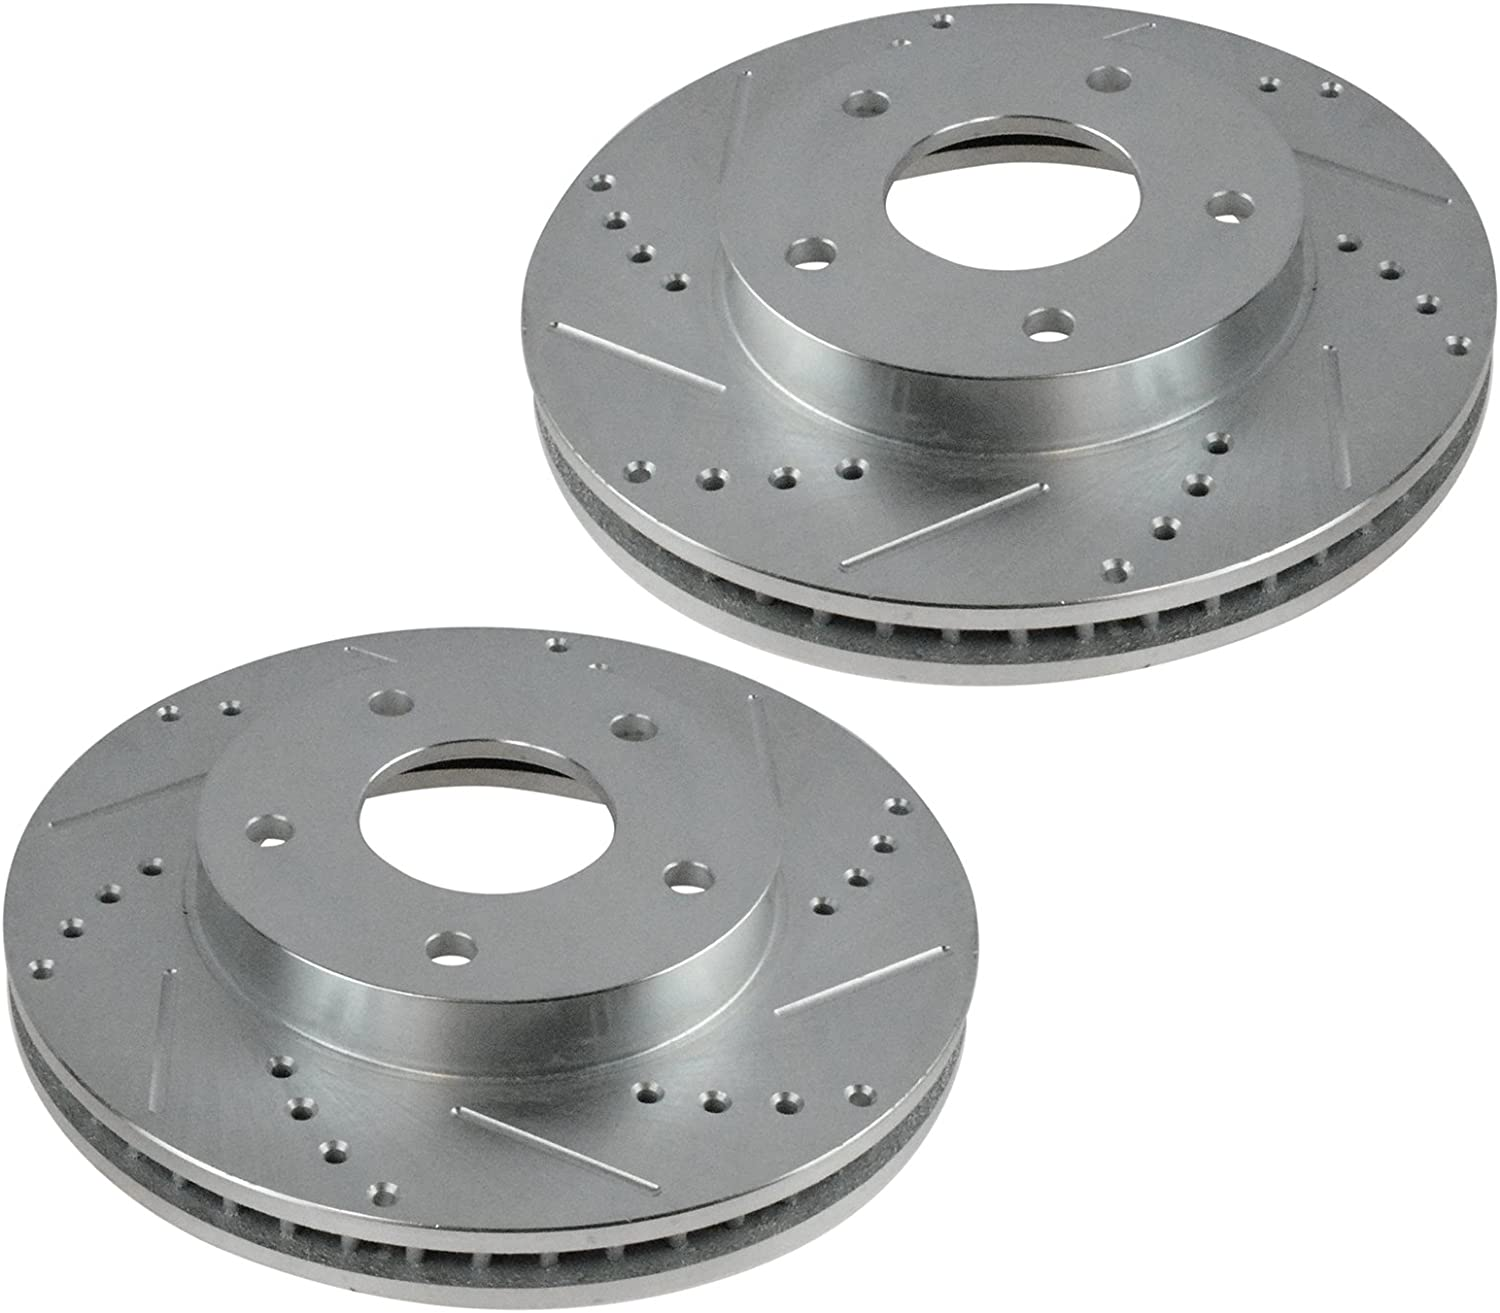 Nakamoto Brake Rotor Drilled /& Slotted Coated /& Ceramic Pad Rear Set for Toyota